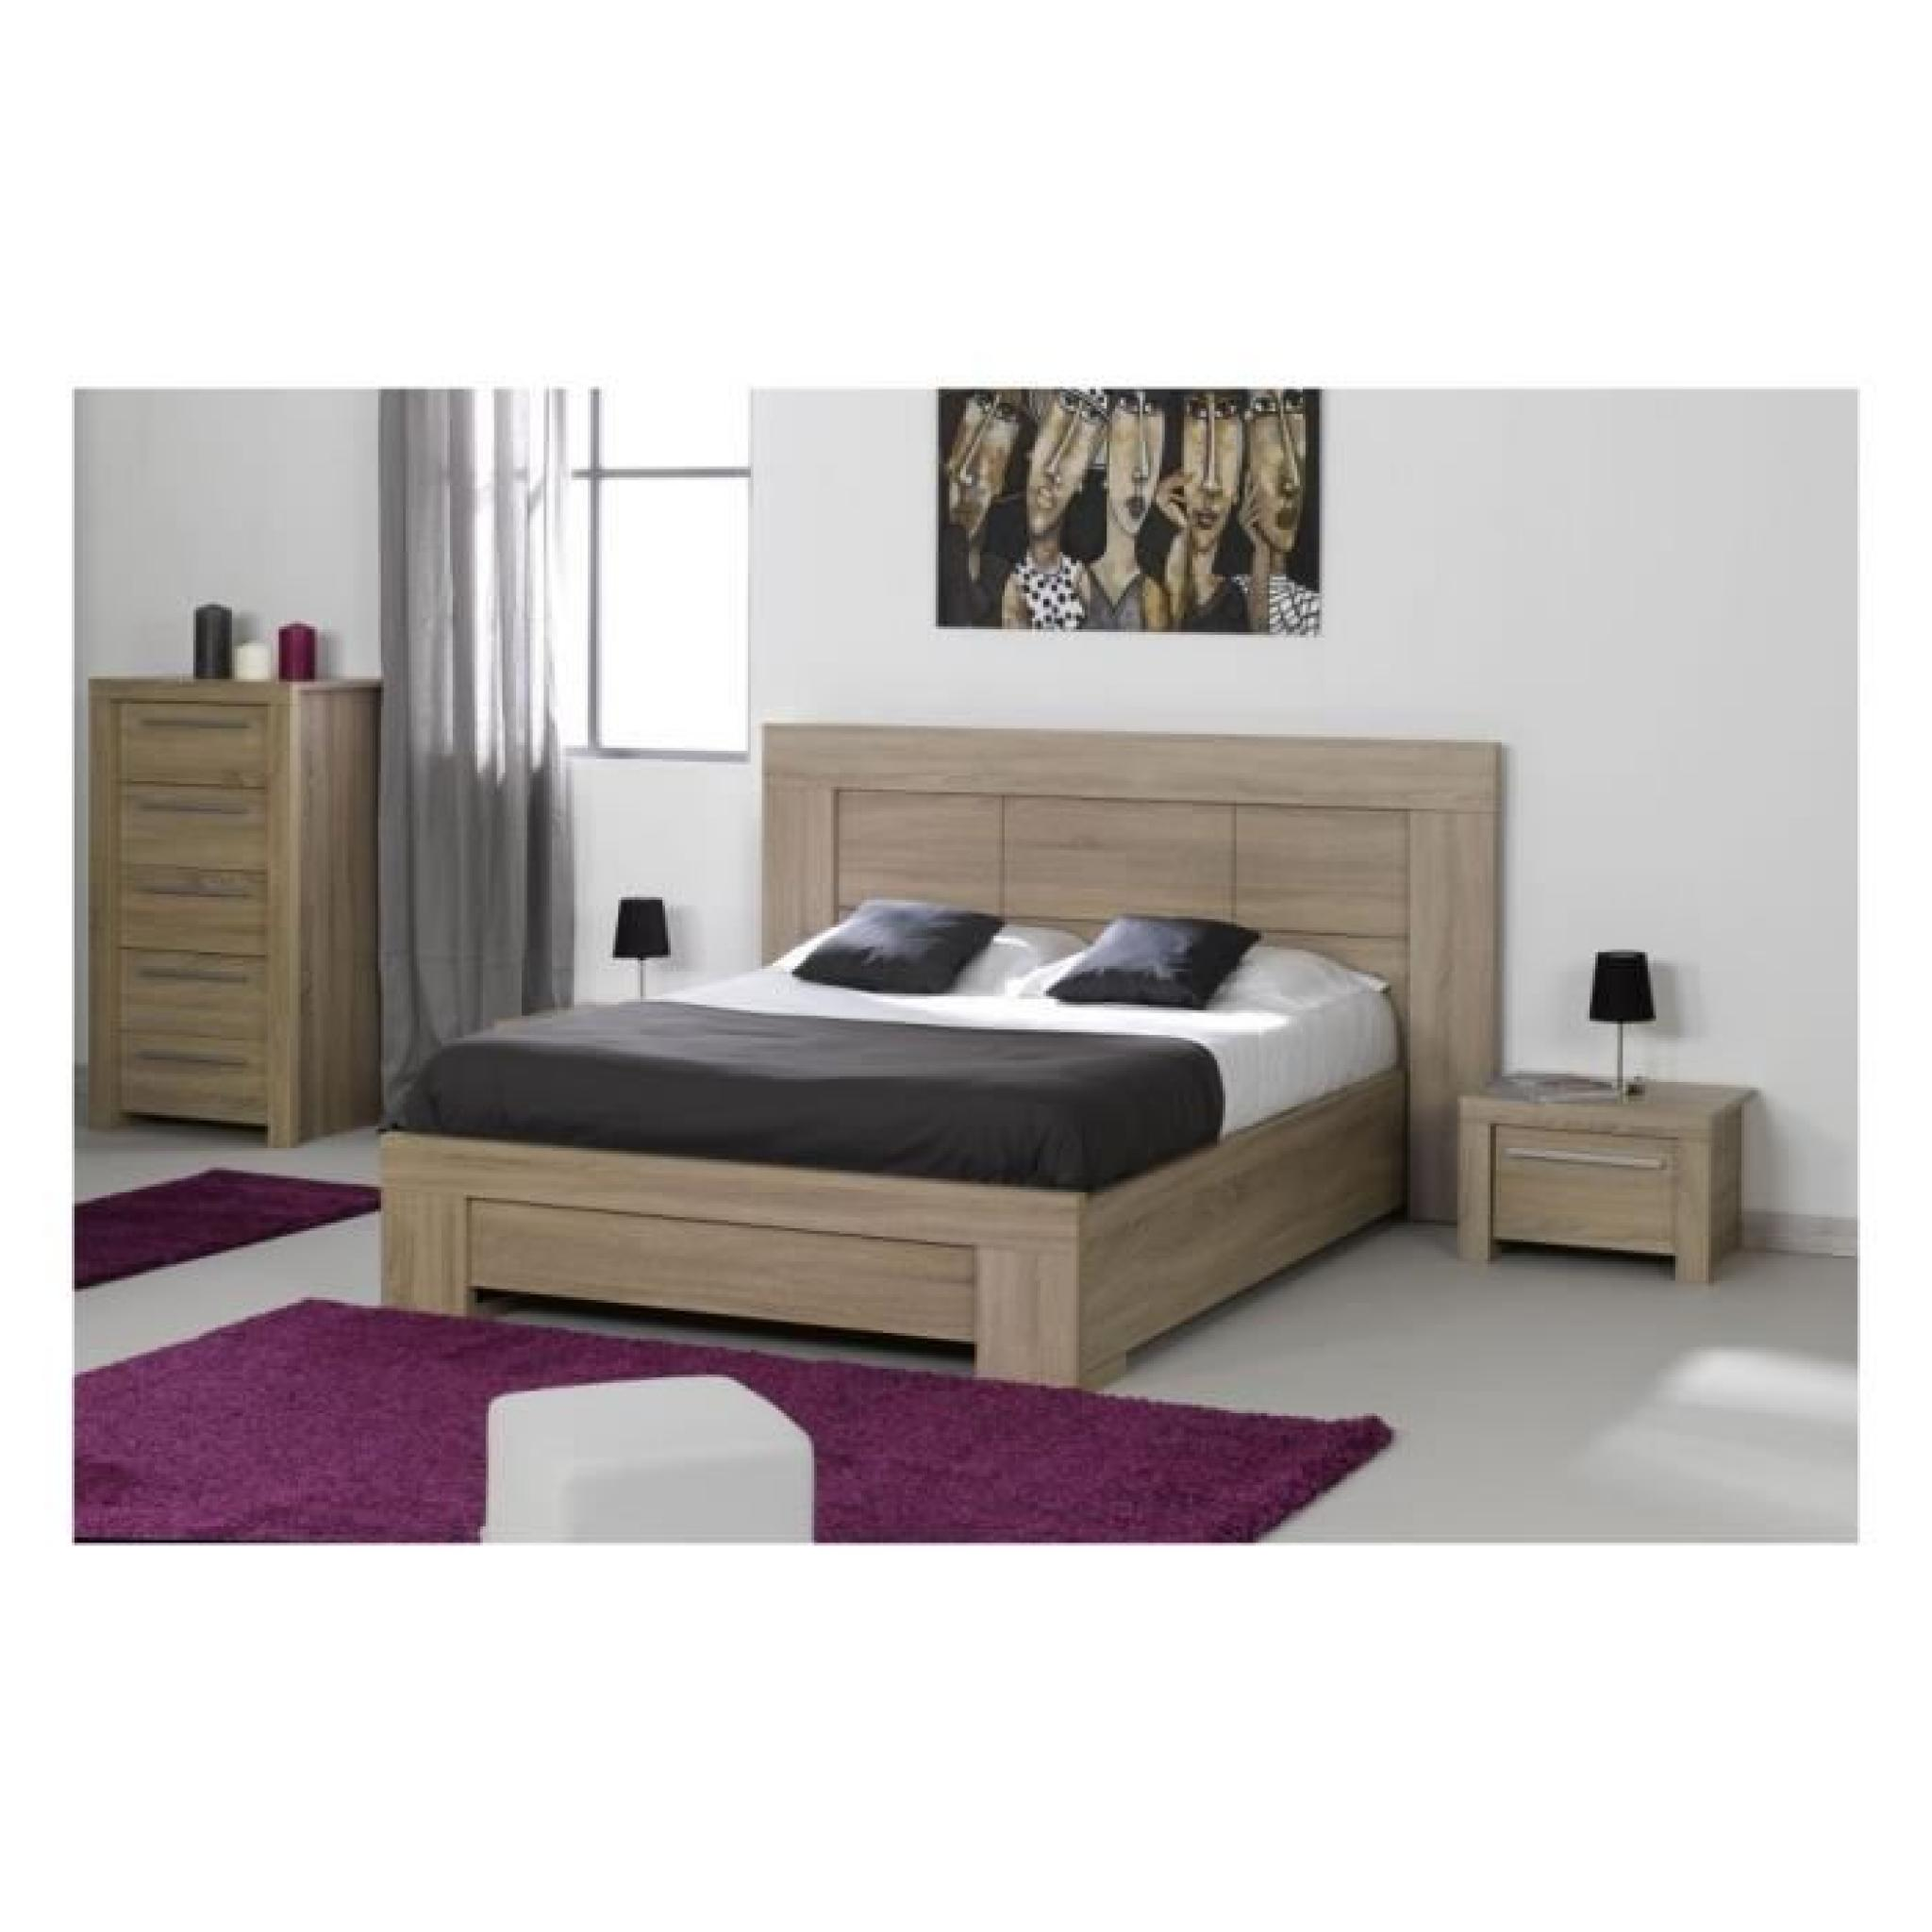 lit adulte 160x200 ana gris achat vente lit pas cher couleur et. Black Bedroom Furniture Sets. Home Design Ideas